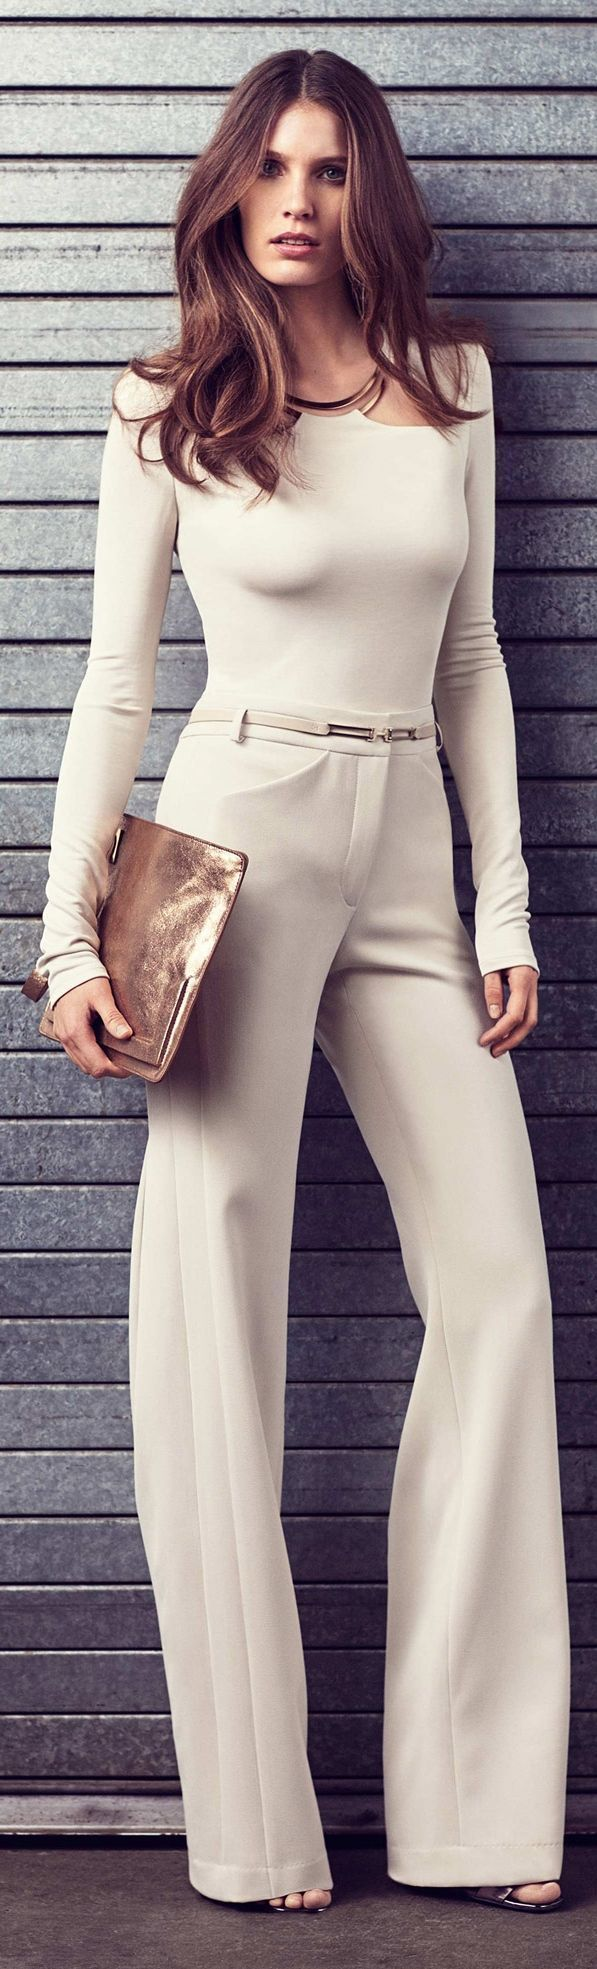 Astounding 17 Best Ideas About Womens Classy Fashion Styles On Pinterest Hairstyles For Women Draintrainus